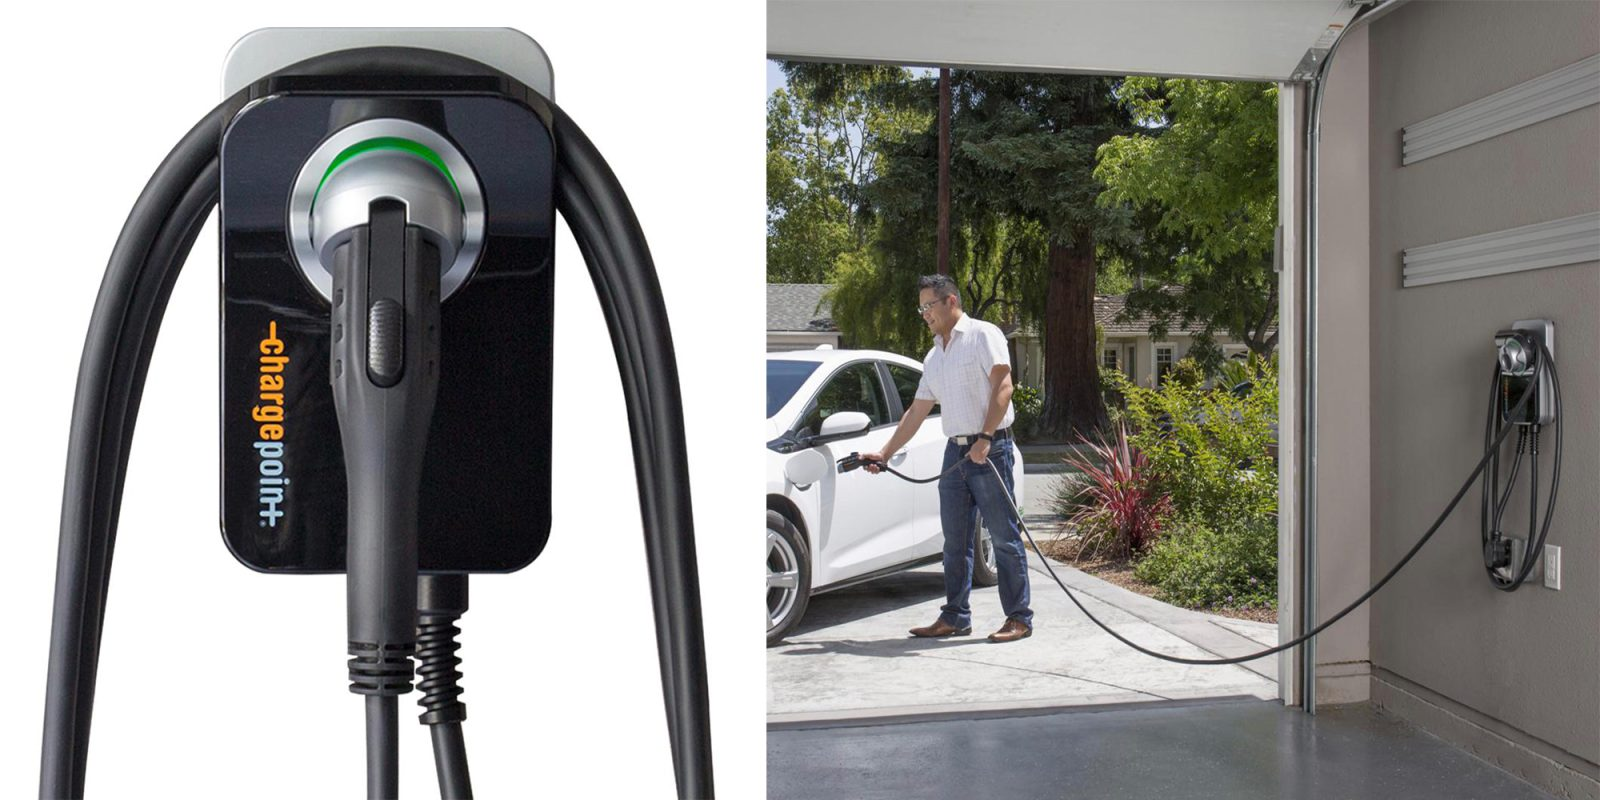 Black Friday Deals For Electric Car Charging Stations And Ev Accessories